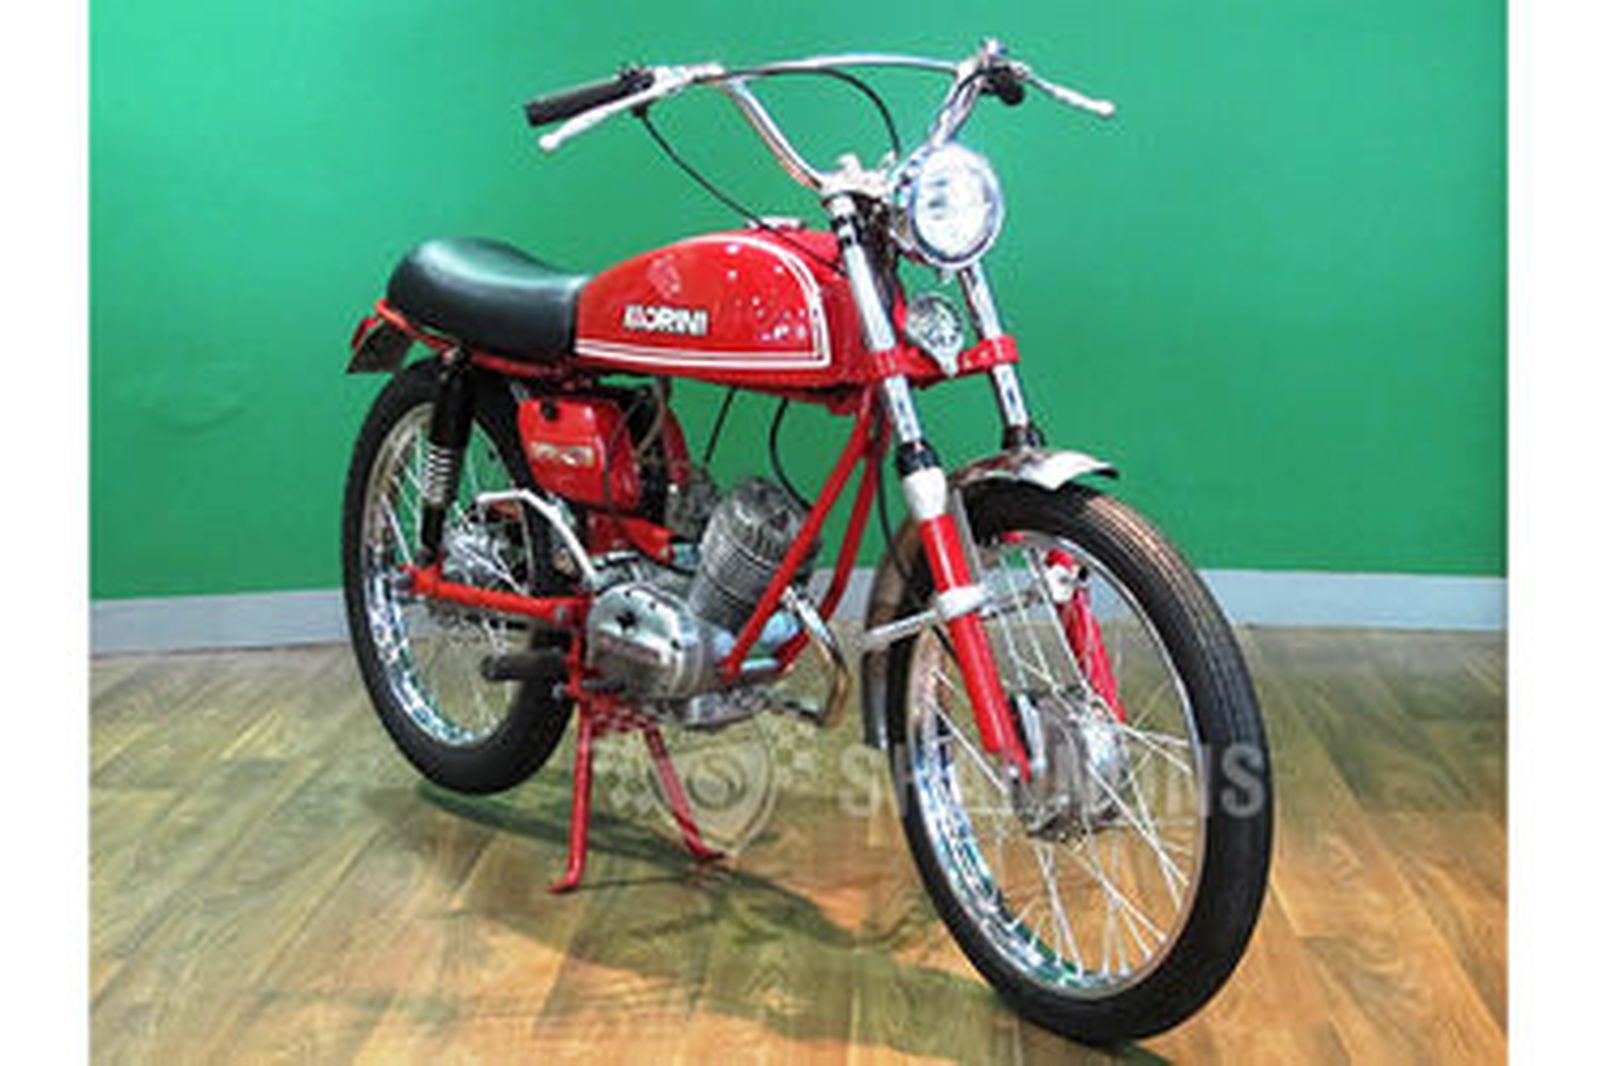 sold moto morini 49cc motorcycle auctions lot ad shannons. Black Bedroom Furniture Sets. Home Design Ideas